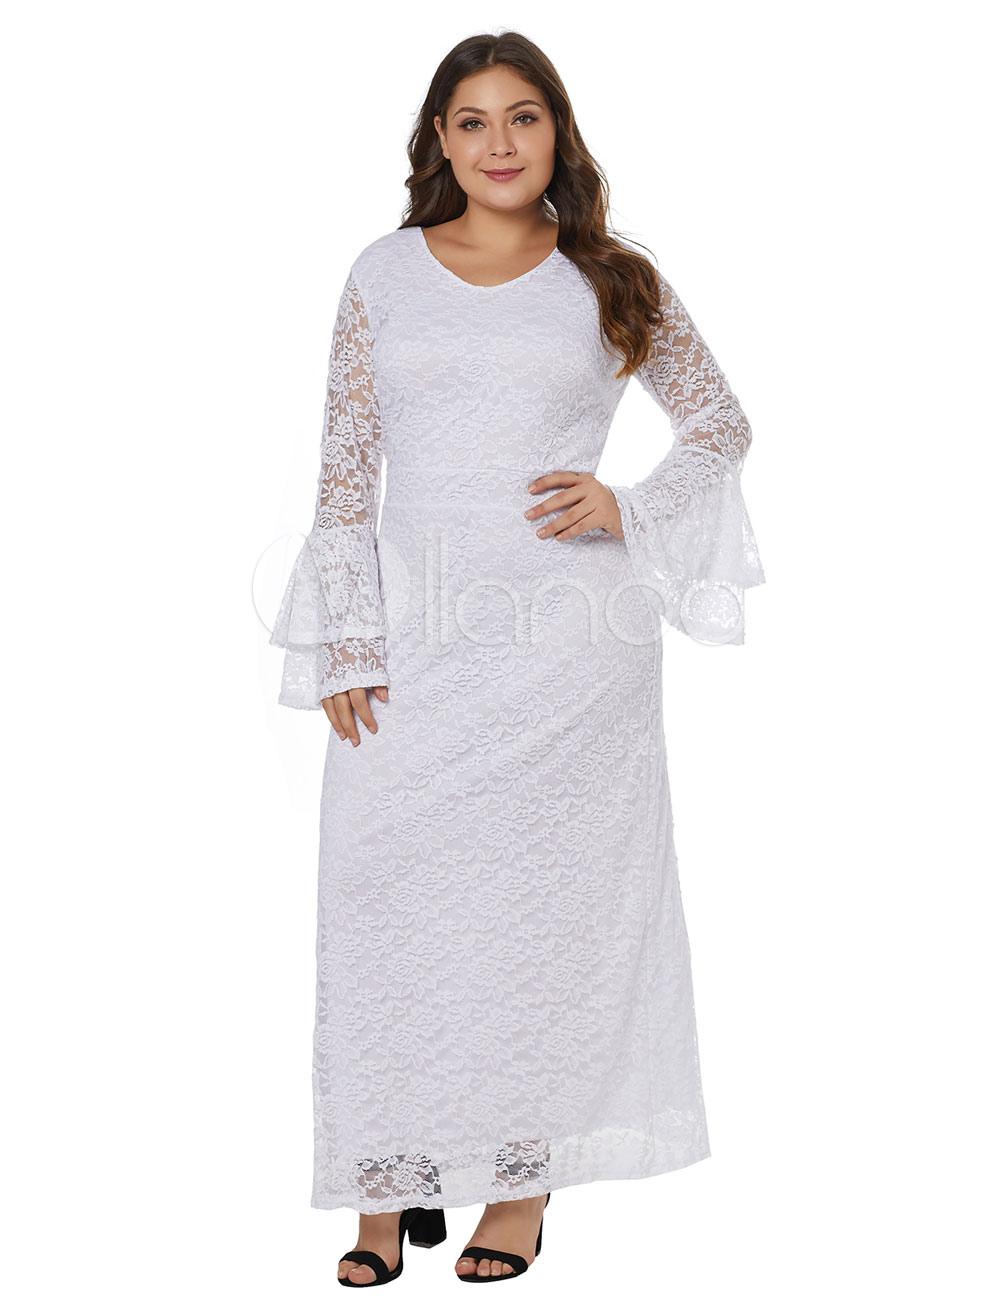 37f047315158 ... Plus Size Maxi Dress White V Neck Long Sleeve Lace Dress-No.5. 1.  35%OFF. Color: AddThis Sharing Buttons